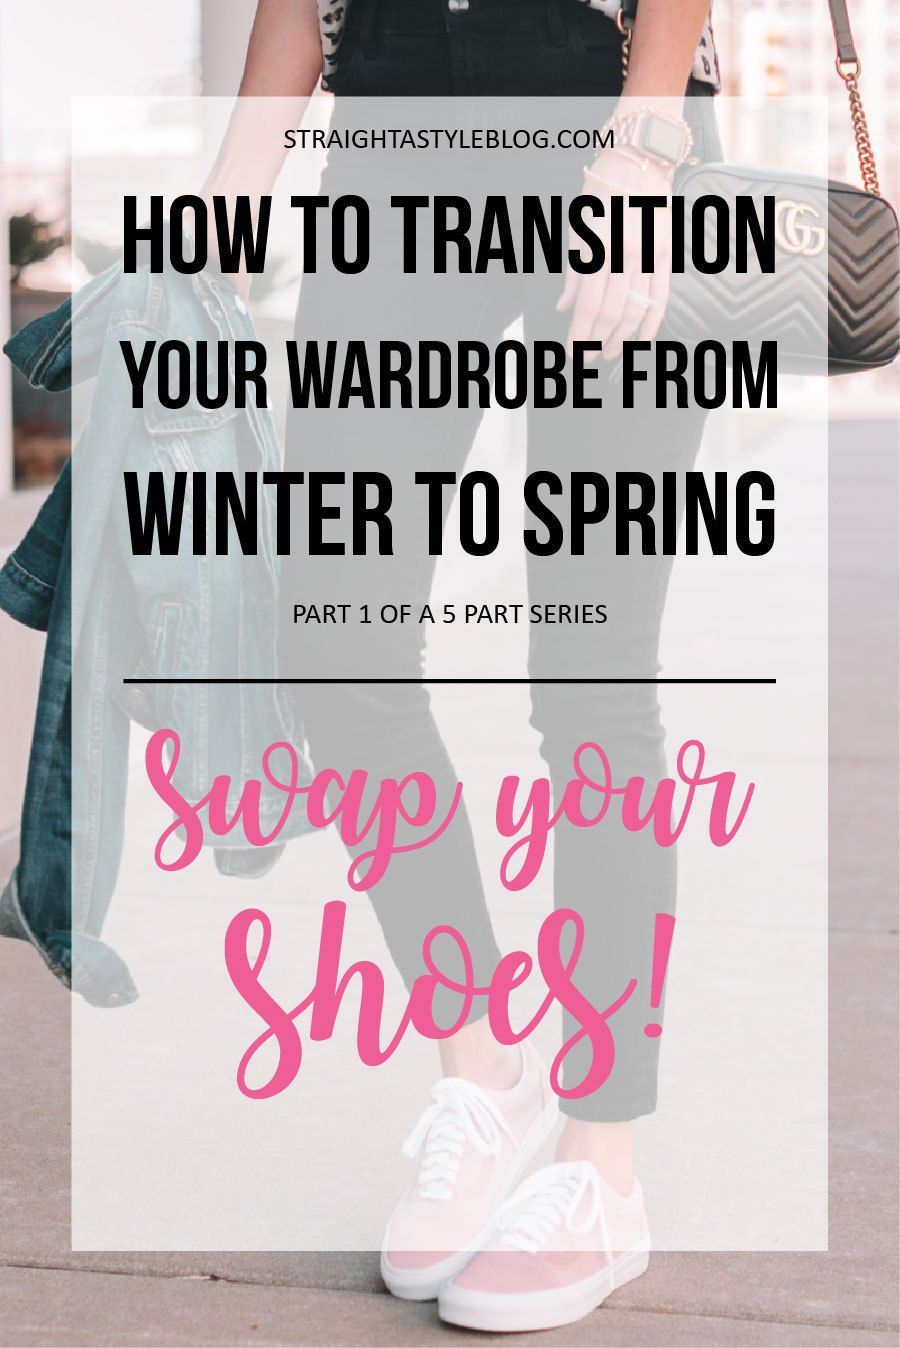 726d51cda How to Transition Your Wardrobe from Winter to Spring - Swap Your Shoes